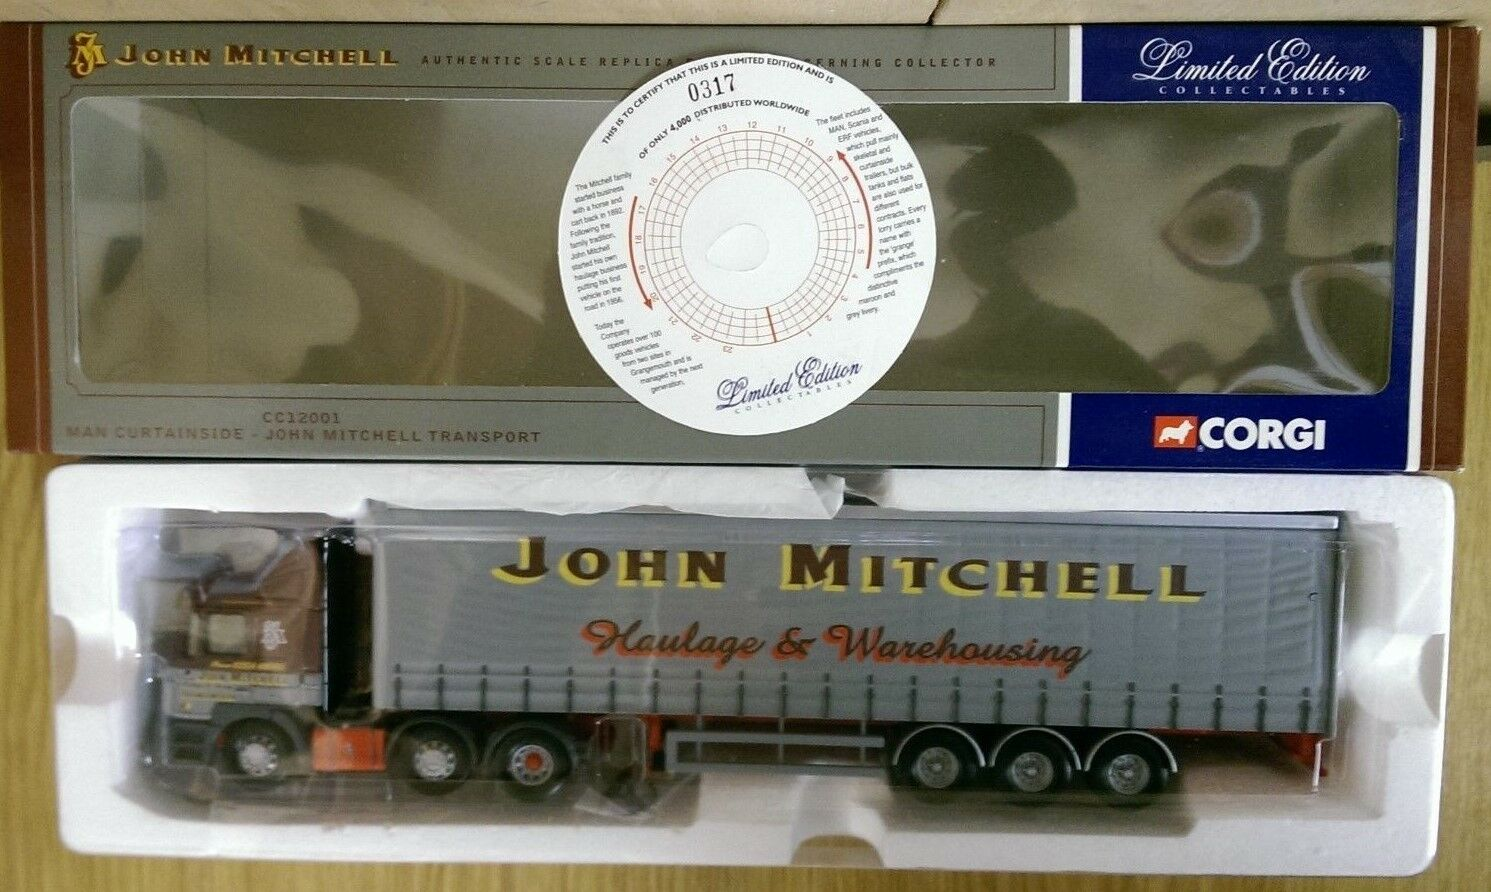 Corgi CC12001 MAN Curtainside John Mitchell Transport Ltd Ed No. 0317 of 4000